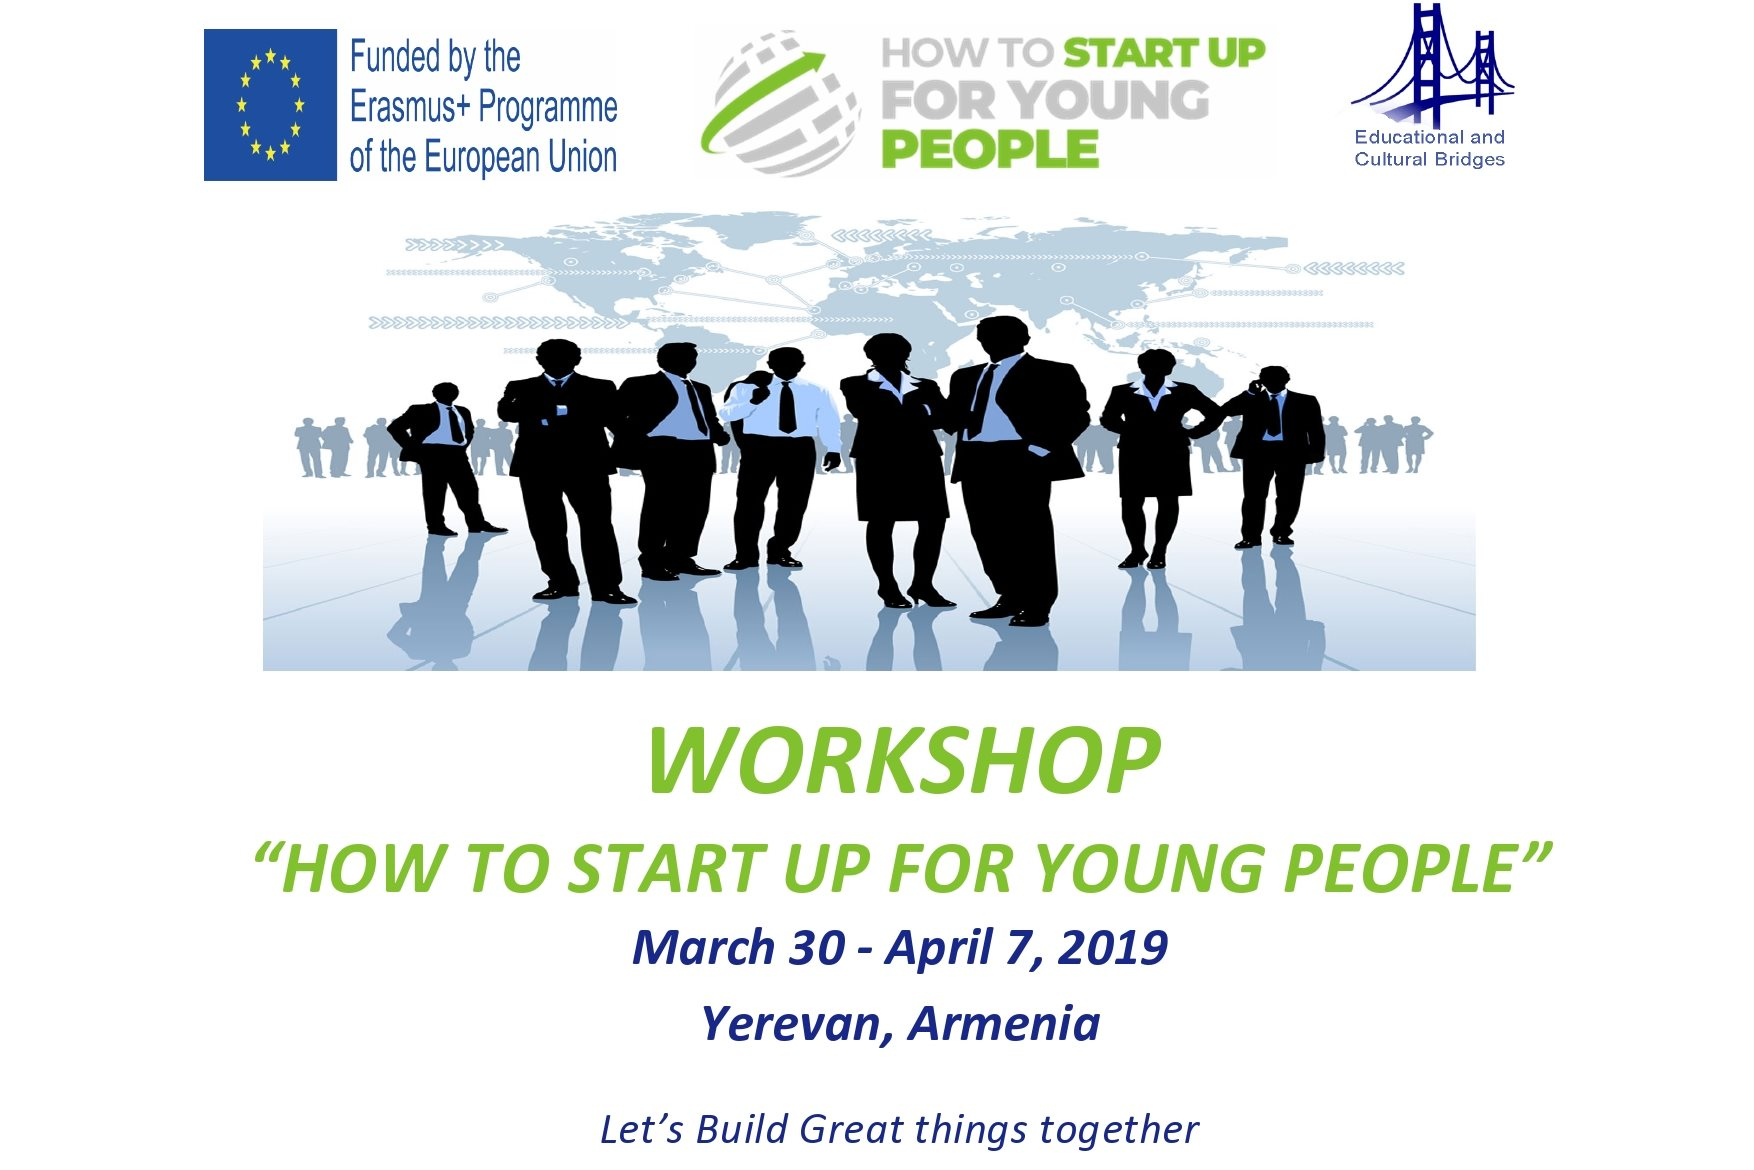 Workshop 'How to START UP for Young People'